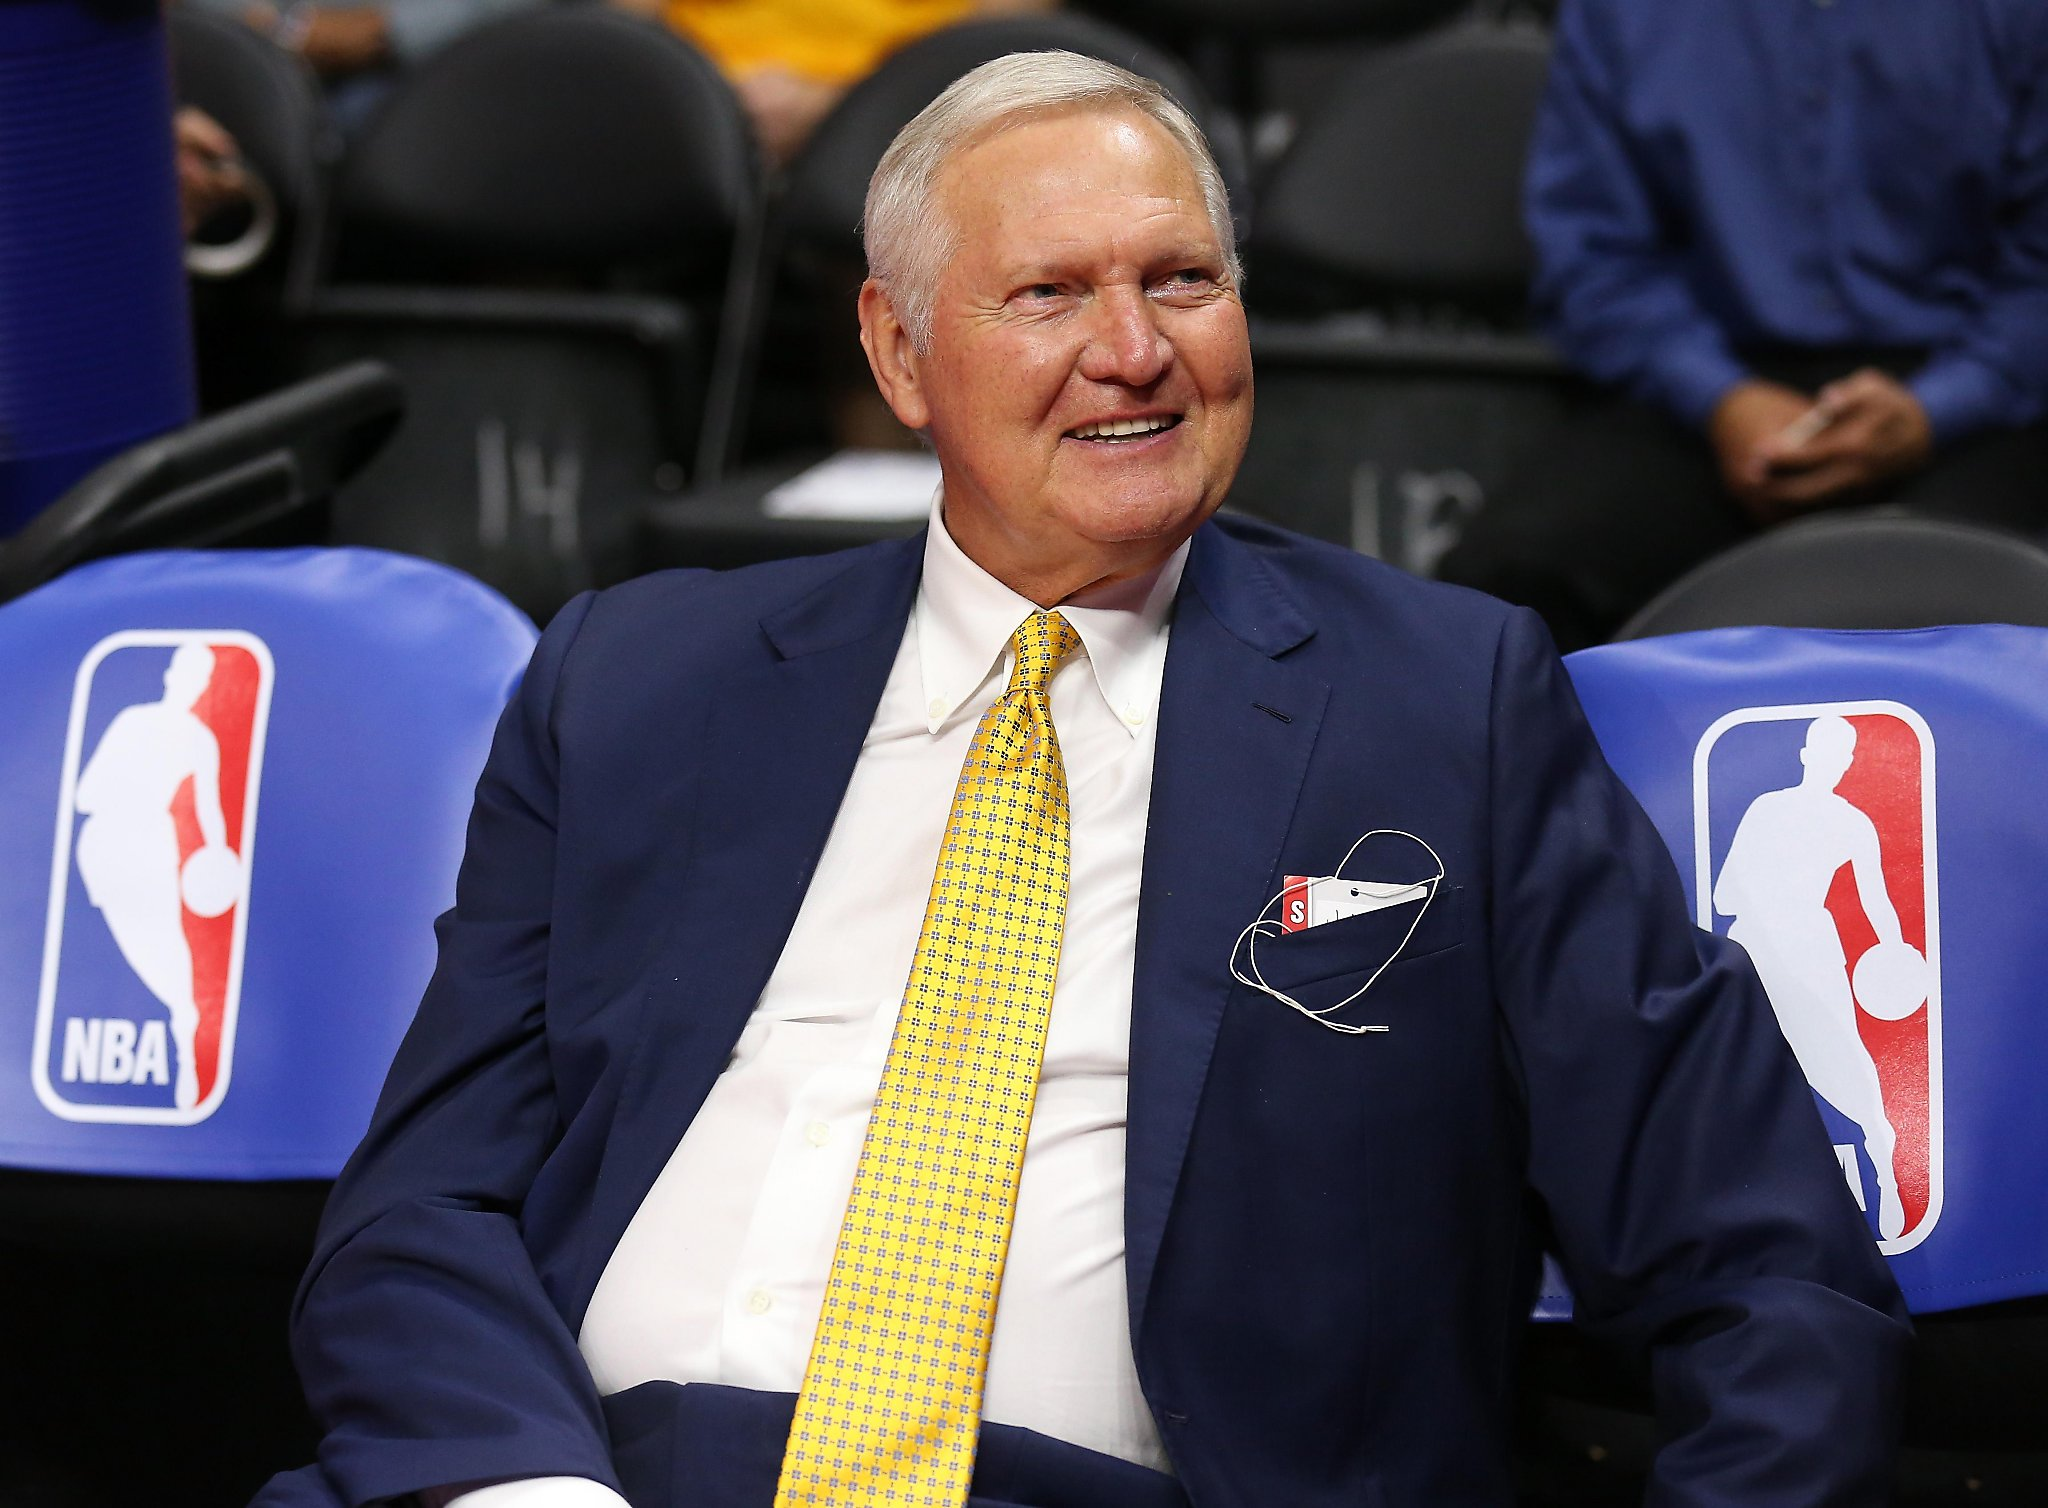 warriors recruiting trip for kevin durant paid off handsomely los angeles ca 31 golden state warriors executive board member jerry west